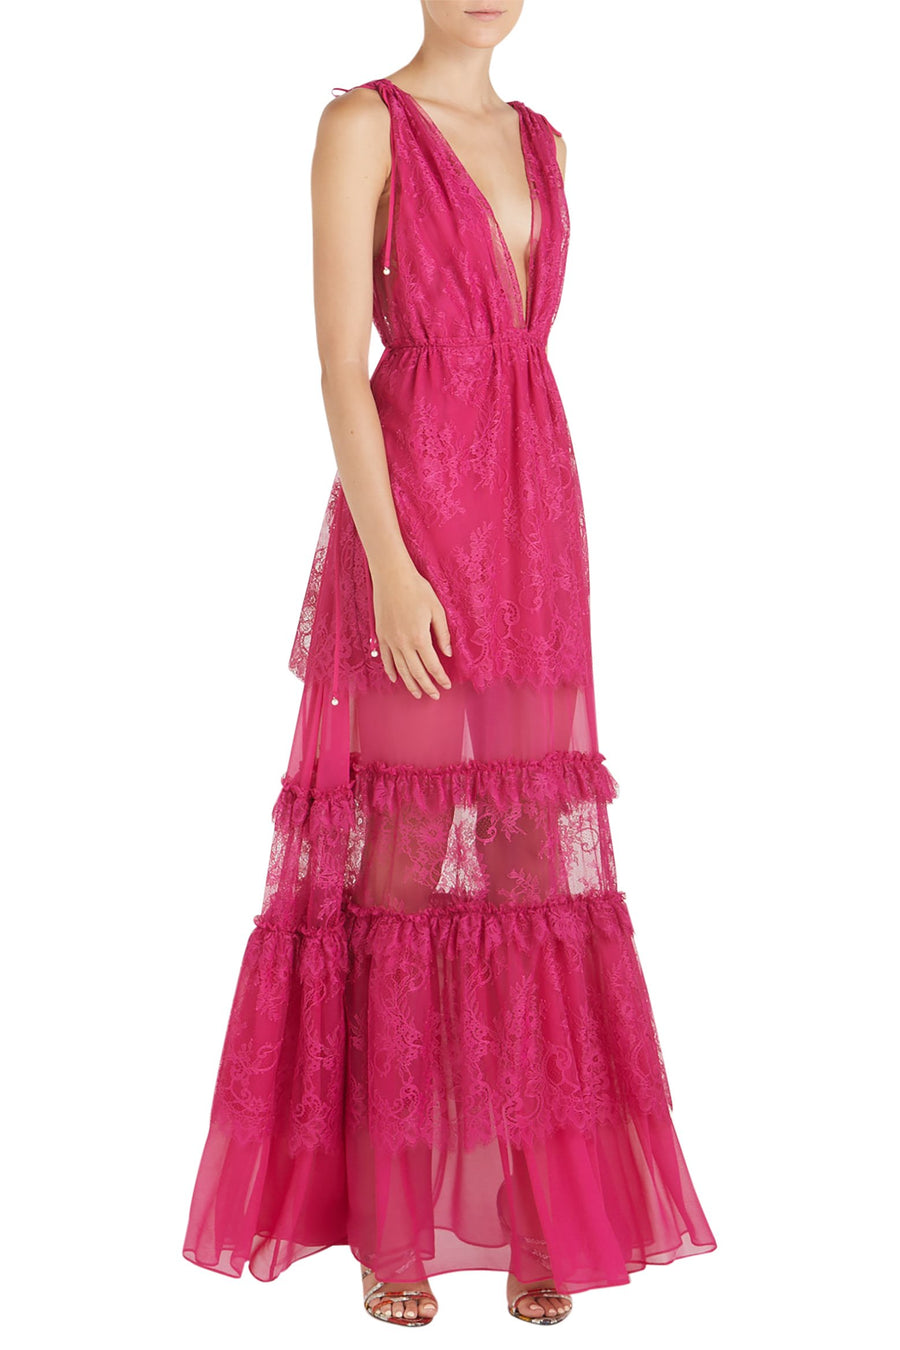 Alexis Umbria Deep V Maxi Dress in Fuchsia from The New Trend